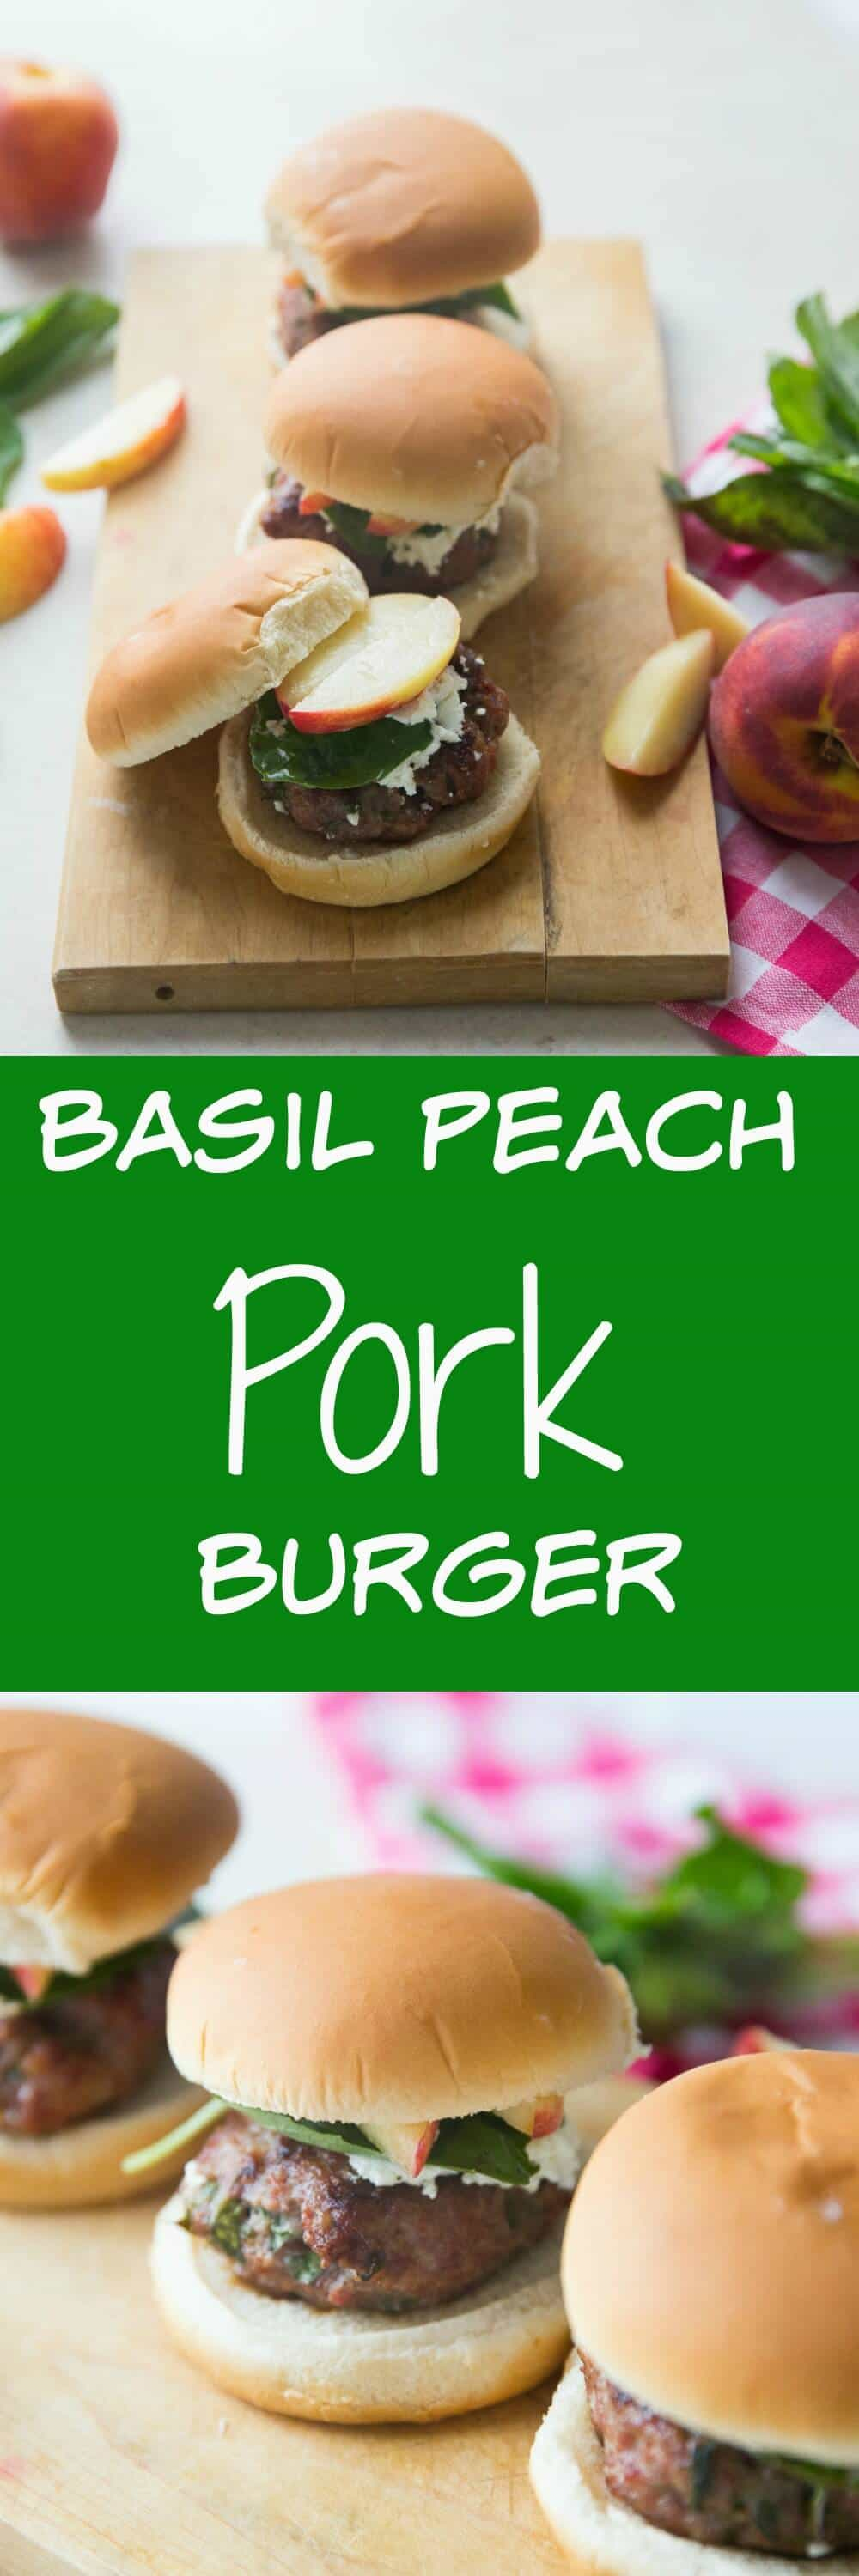 You have to try this pork burger recipe for your next cookout! Pork makes a super juicy burger and it tastes amazing with sweet peaches and tangy goat cheese!